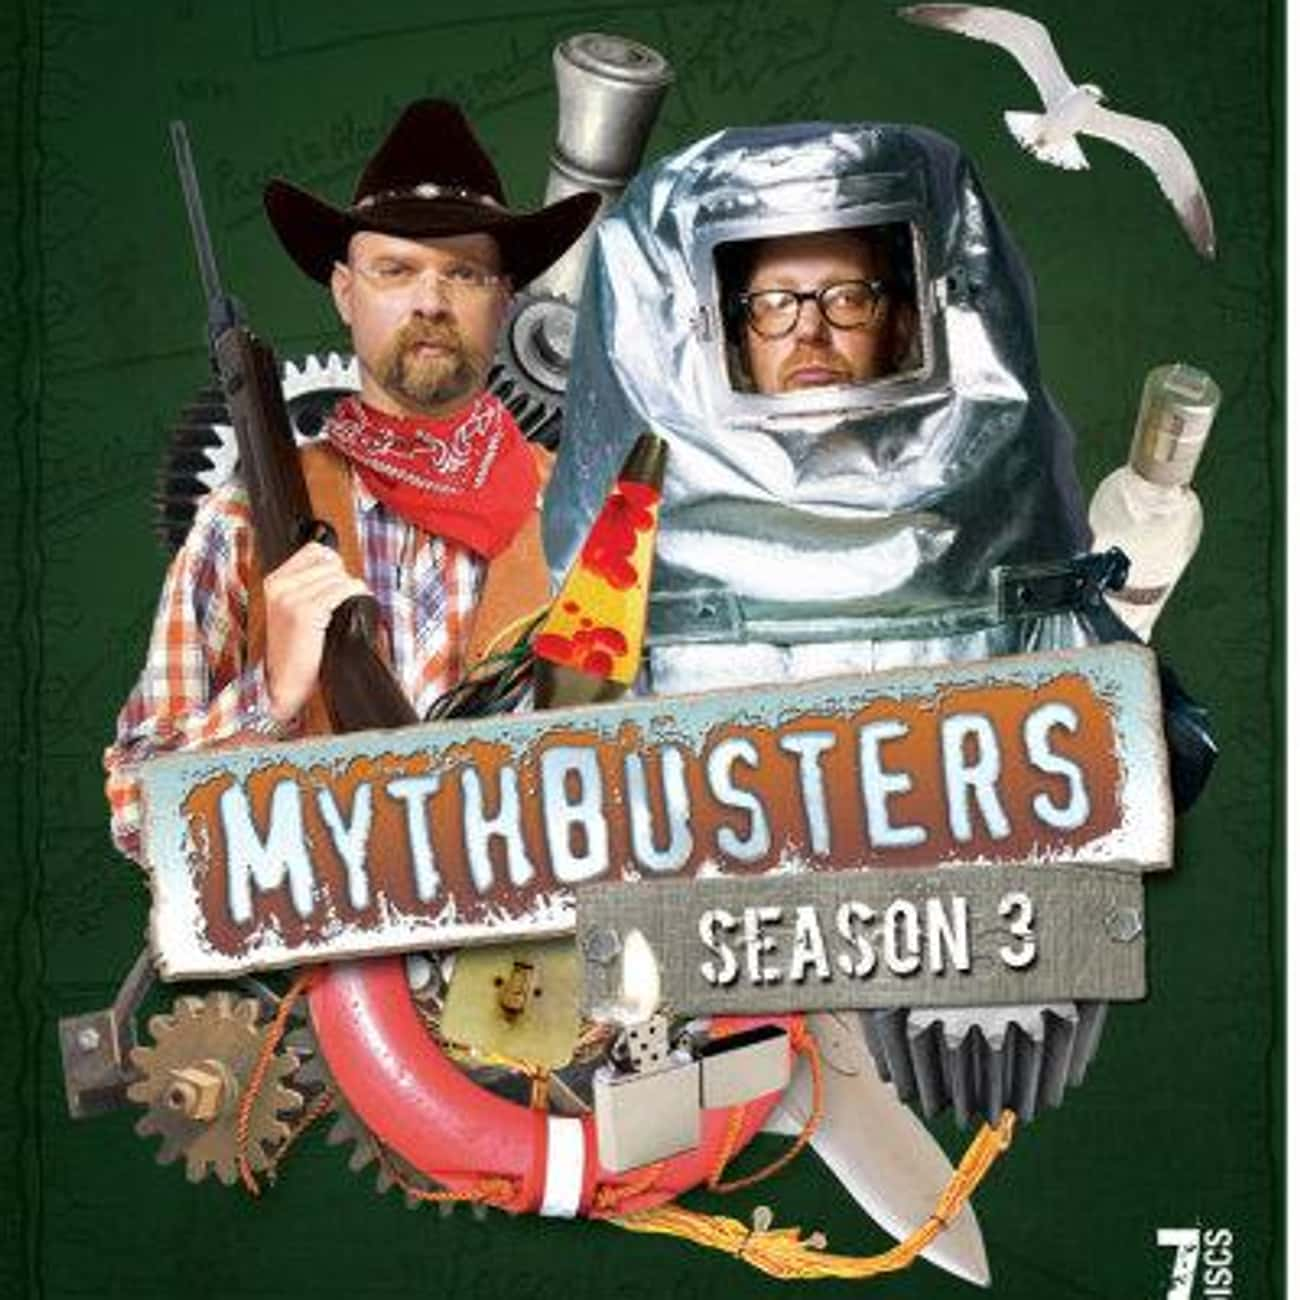 MythBusters Season 3 is listed (or ranked) 3 on the list The Best Seasons of MythBusters